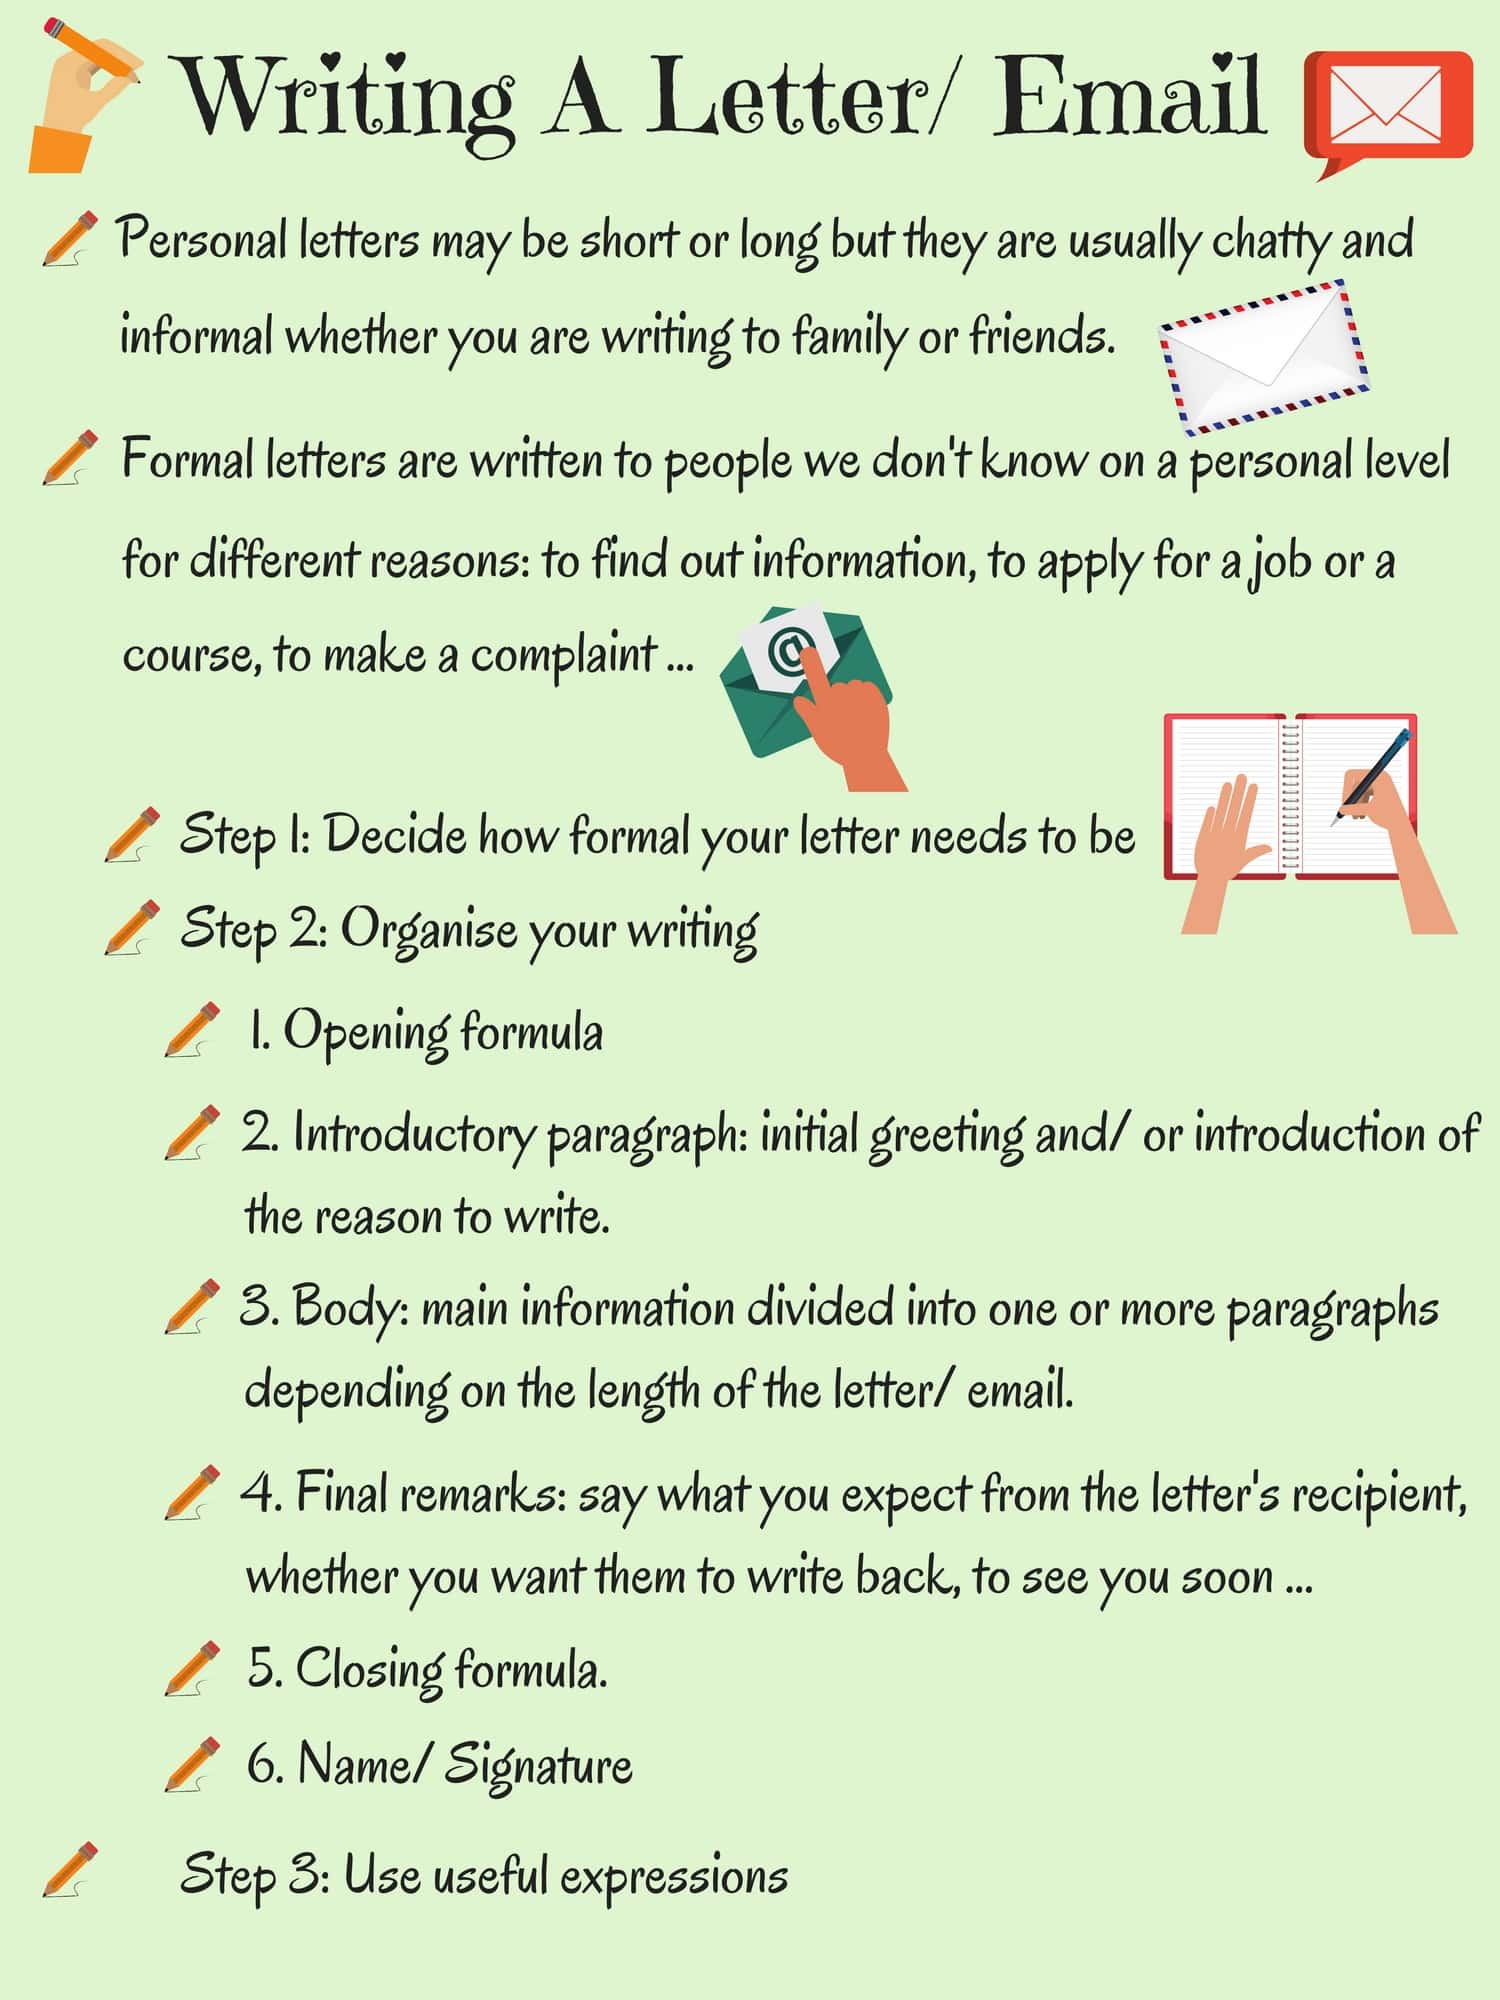 How to write a letter essay